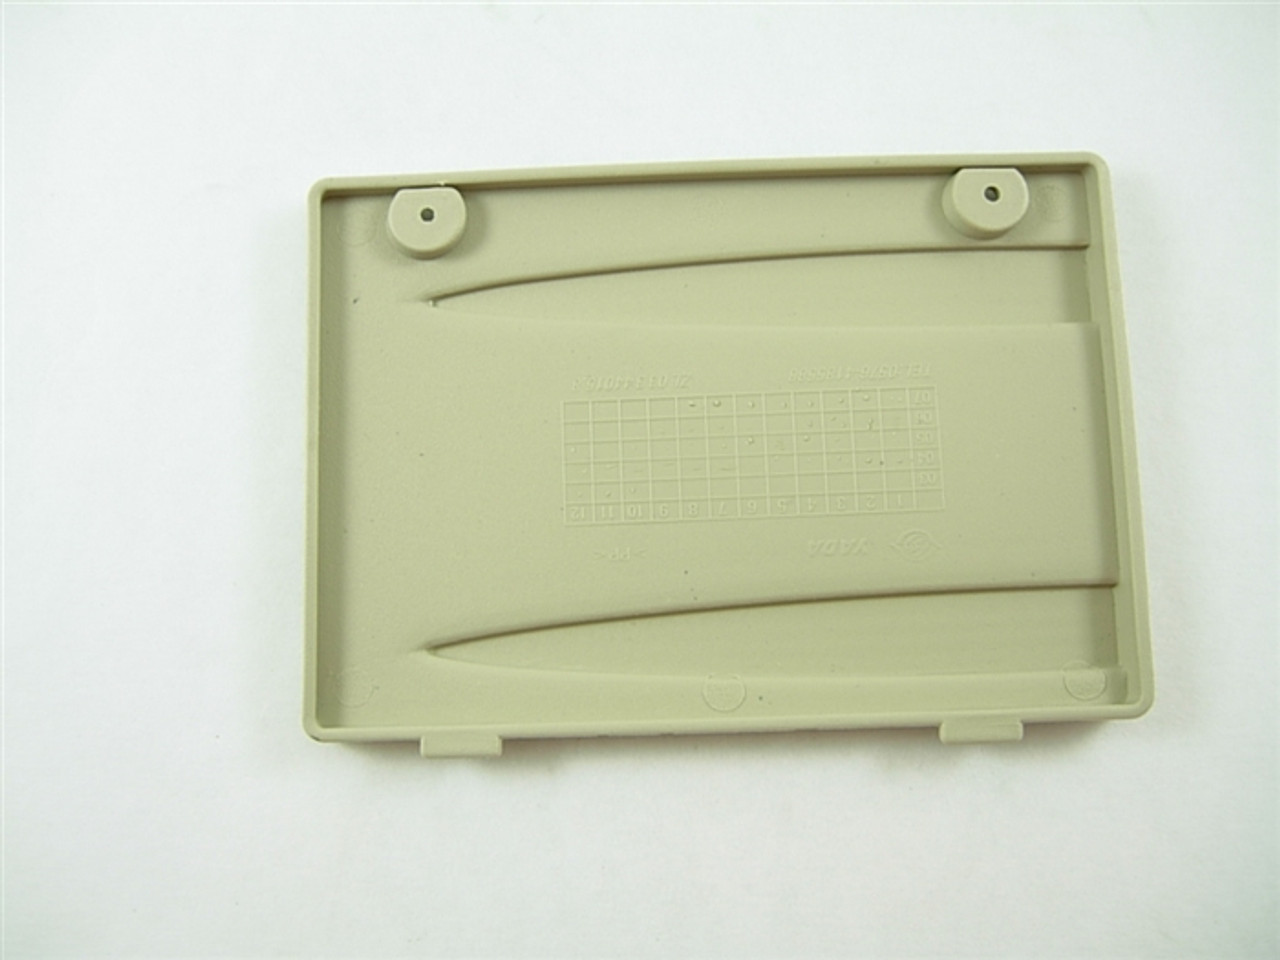 BATTERY COVER 11693-A95-1